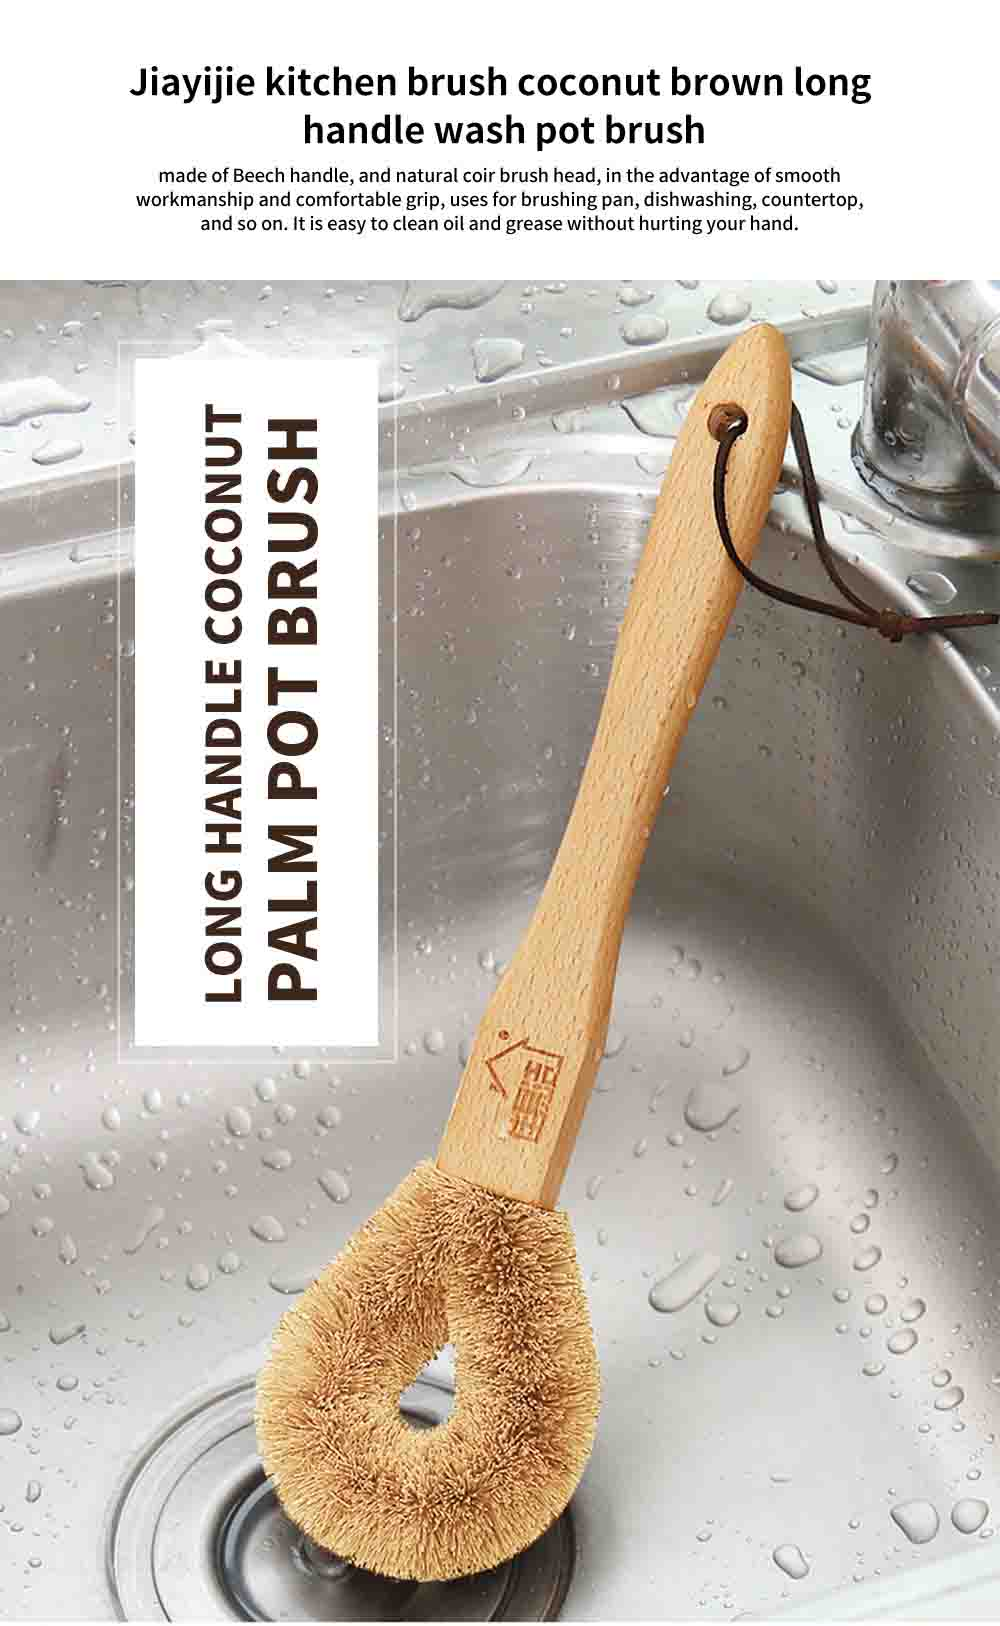 Dish washing Brush With Long Handle, Brown Coconut Brush Pot Brush Cleaner  0